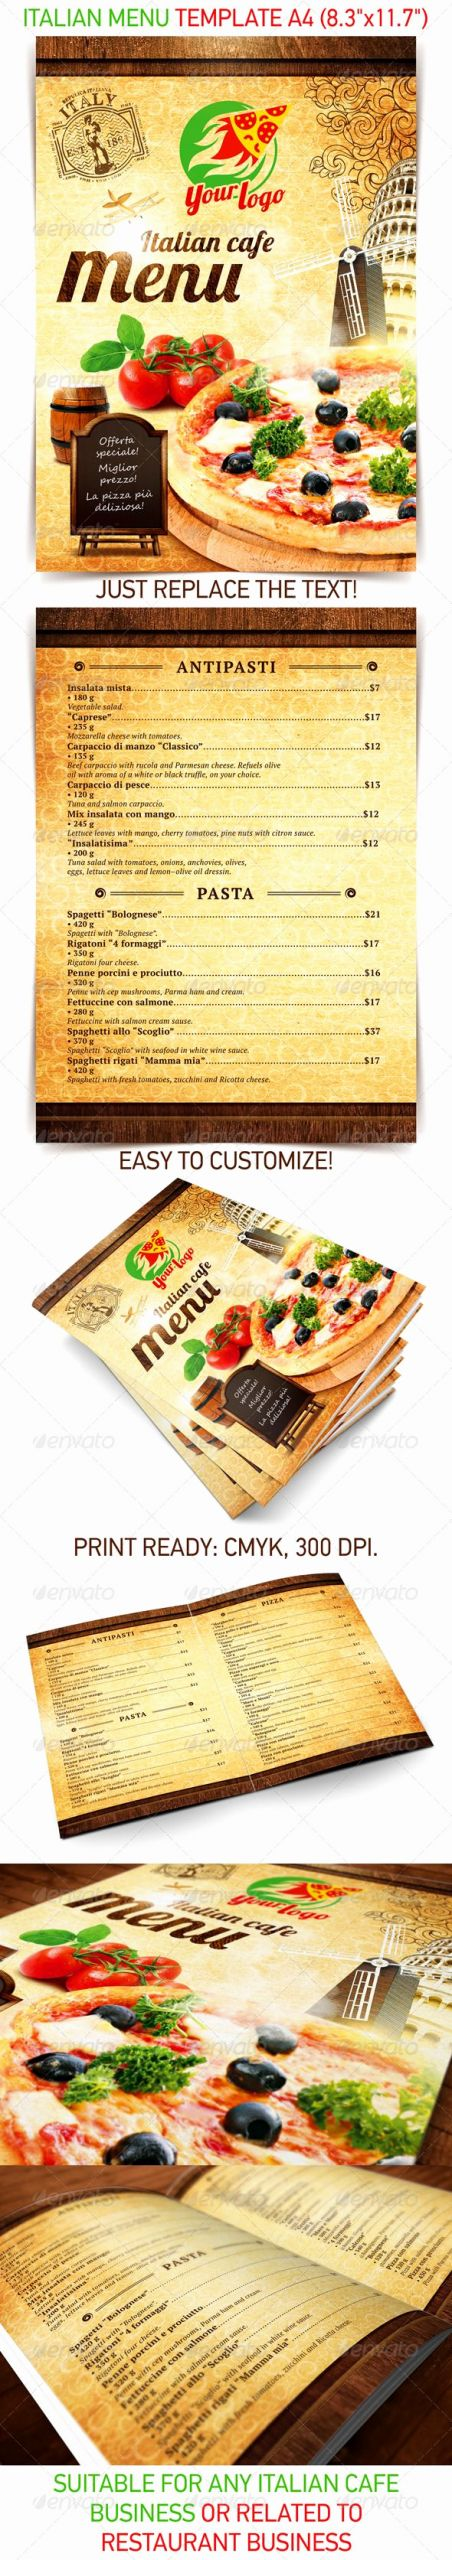 Italian Restaurant Menu Template Beautiful Italian Menu Template Food Menus Print Templates